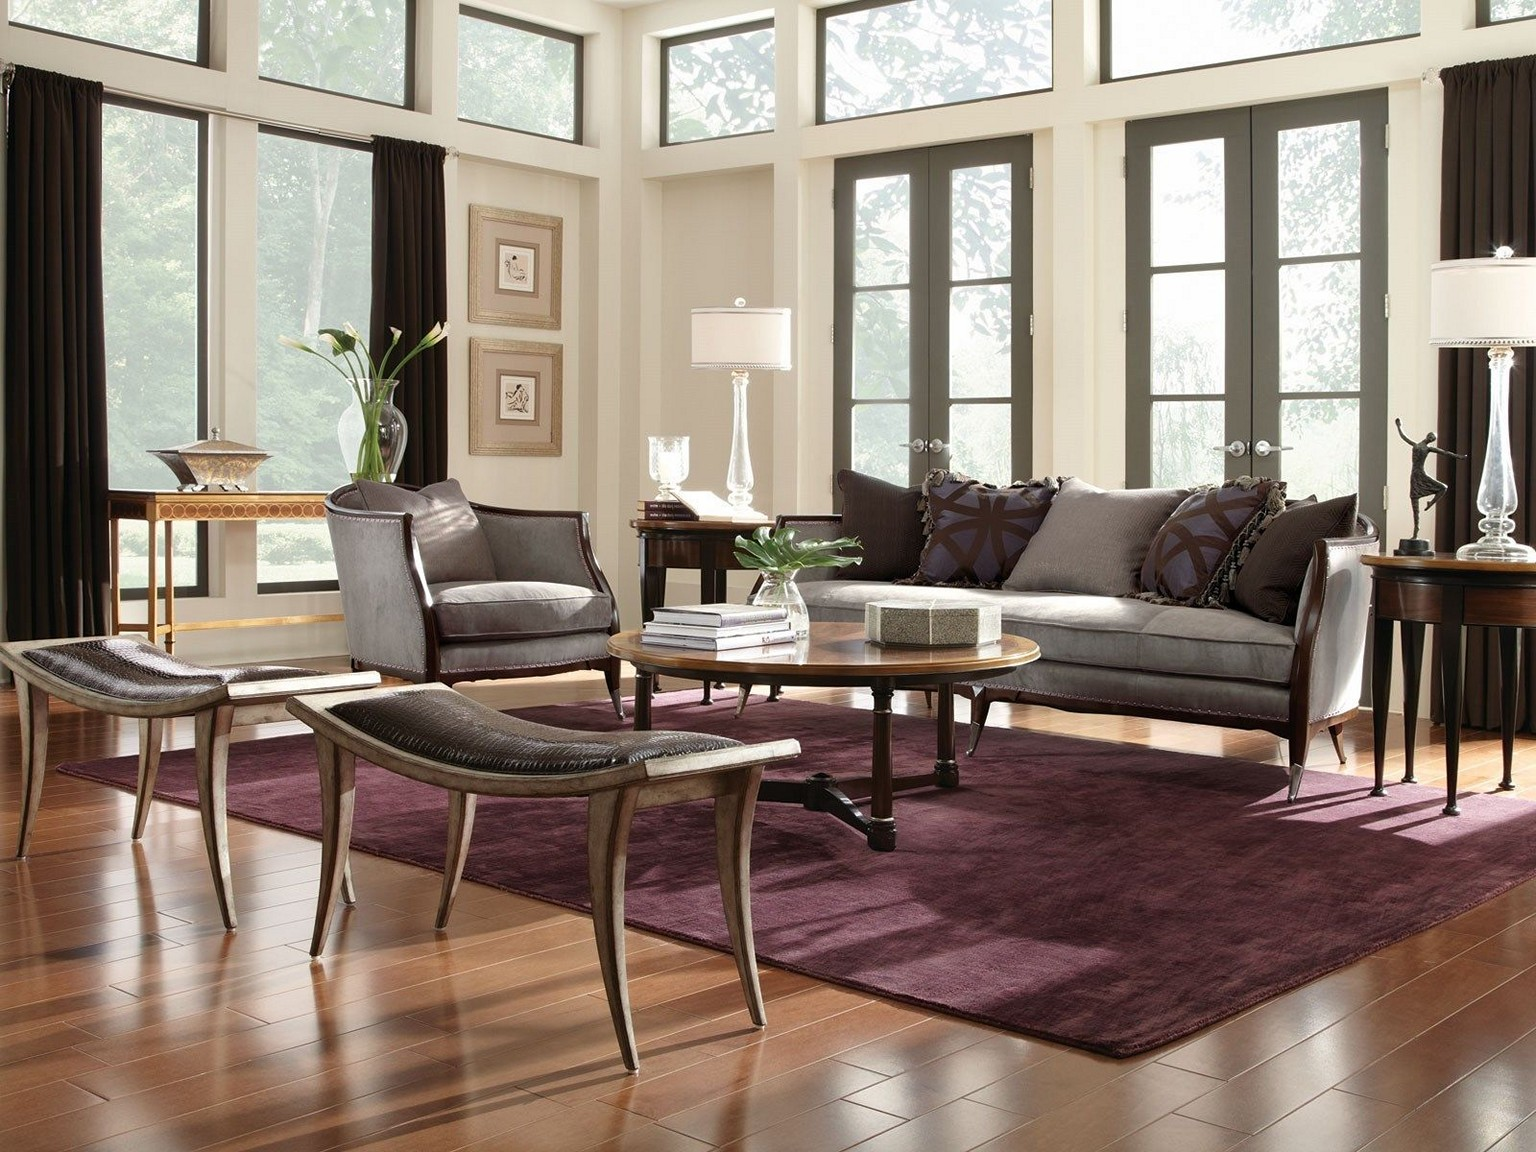 elegant furniture for living room IGKJZET